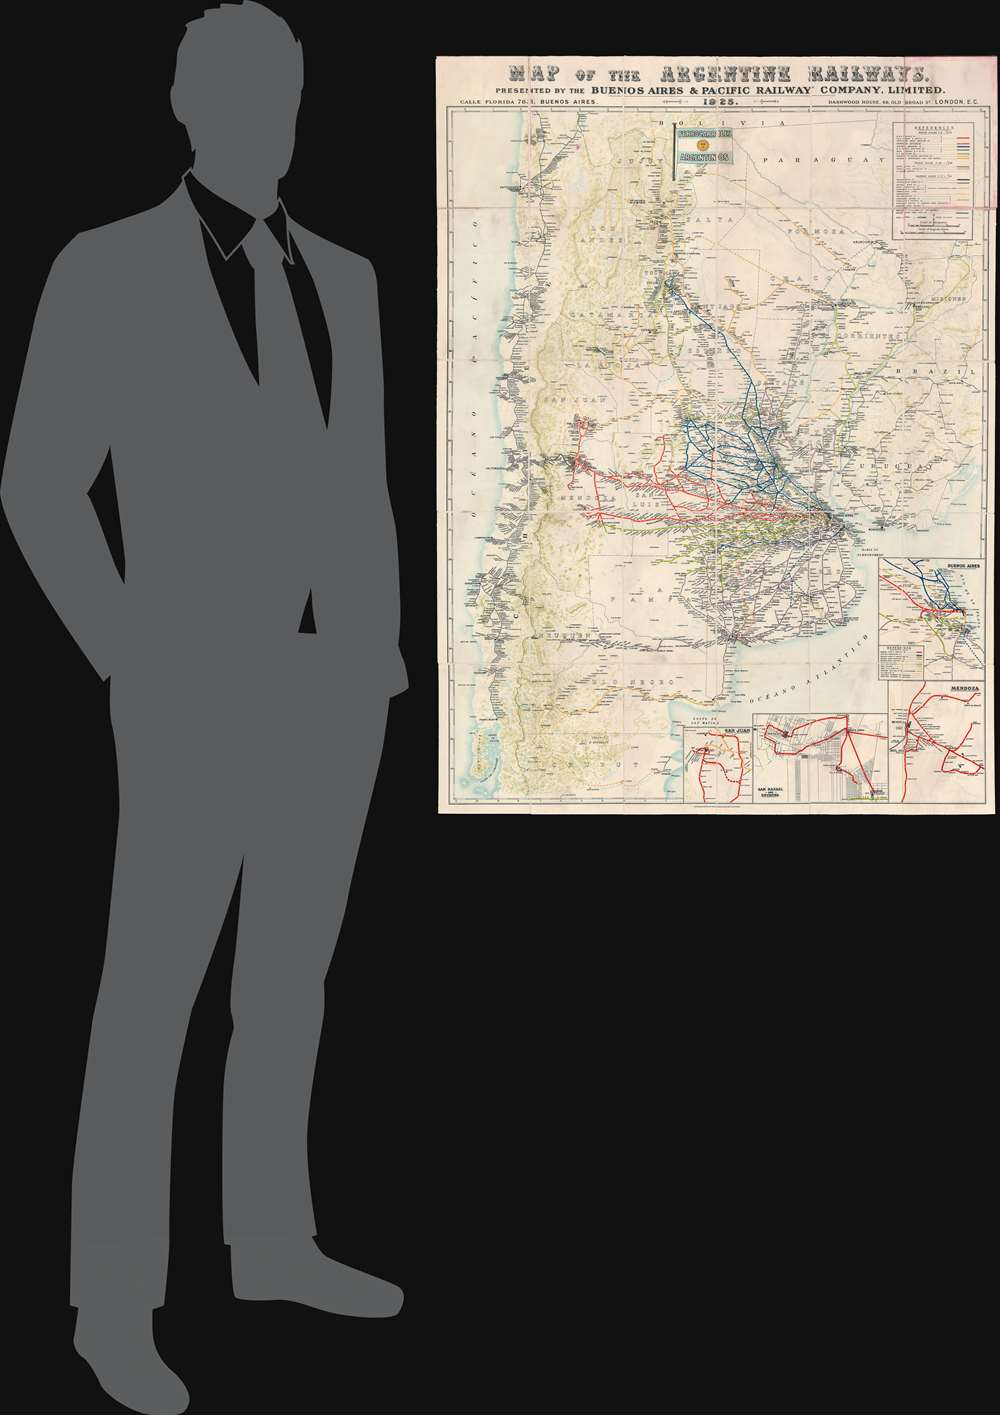 Map of the Argentine Railways.  Presented by the Buenos Aires and Pacific Railway Company, Limited. - Alternate View 1